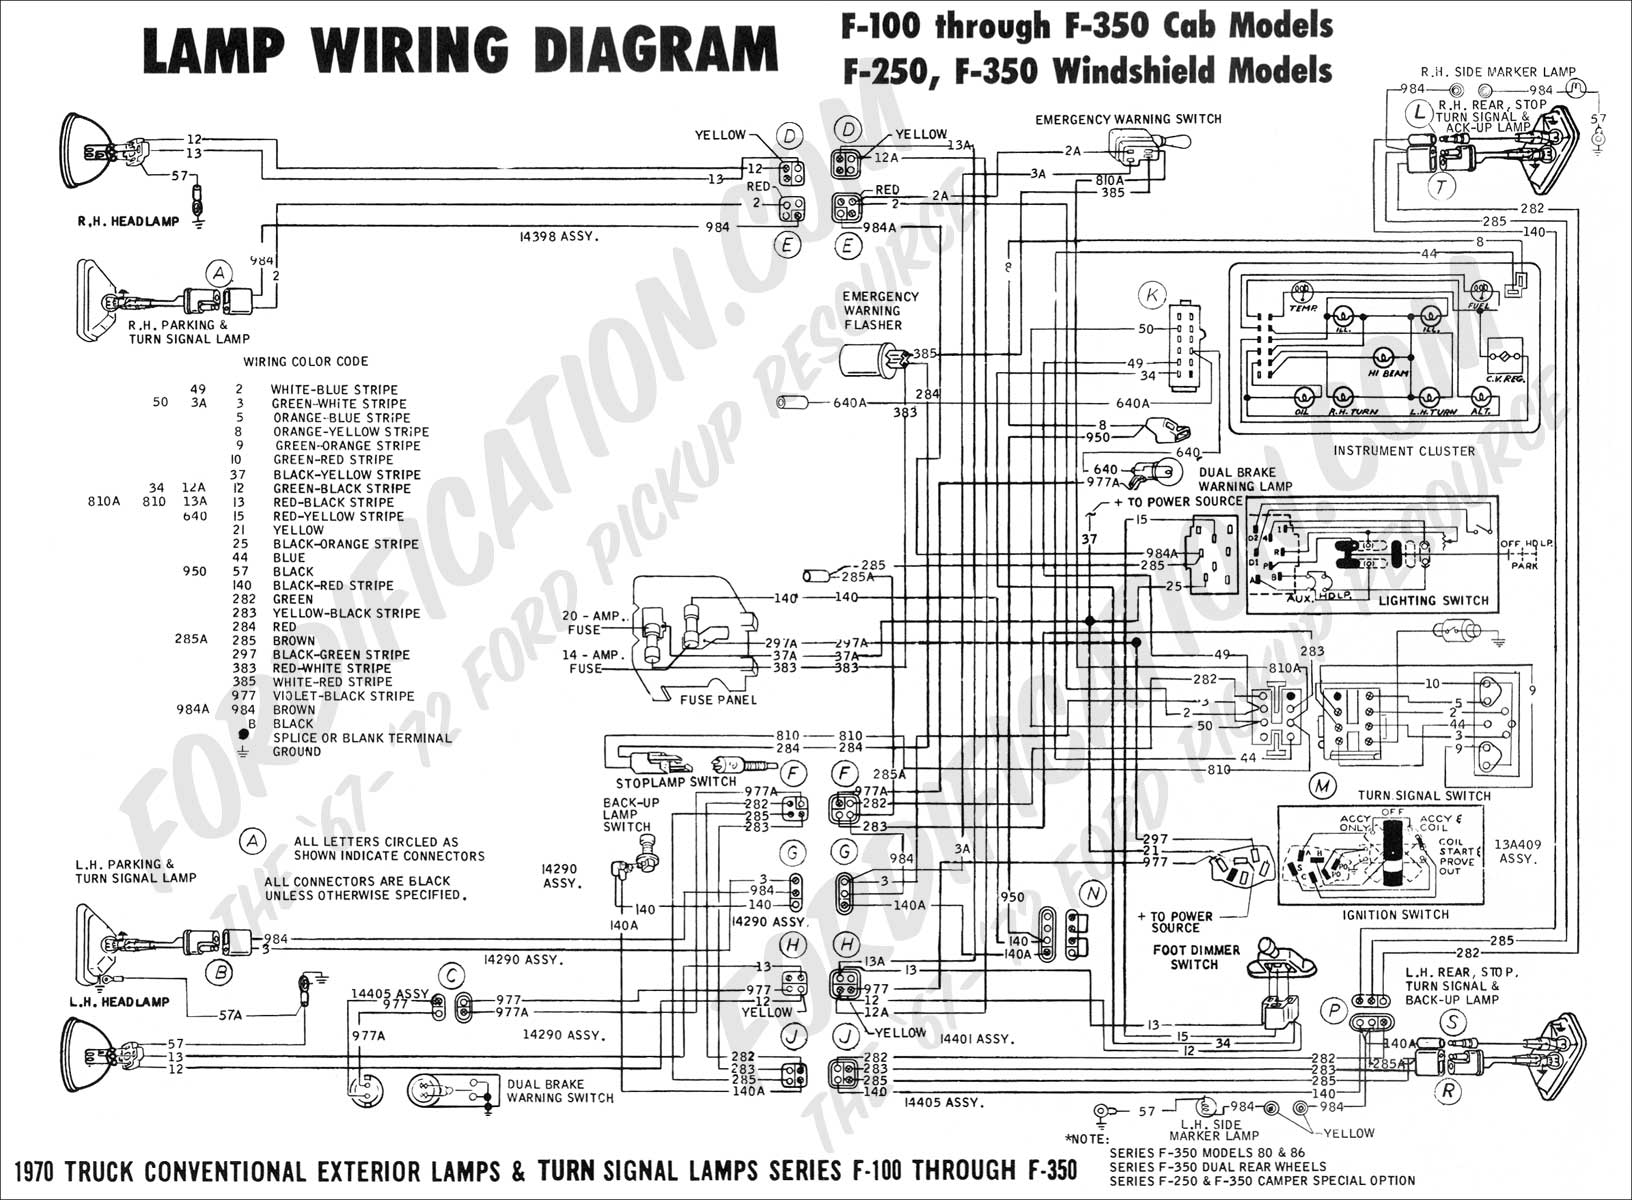 03 ford f 150 abs wiring diagram ford van wiring diagram ford wiring diagrams